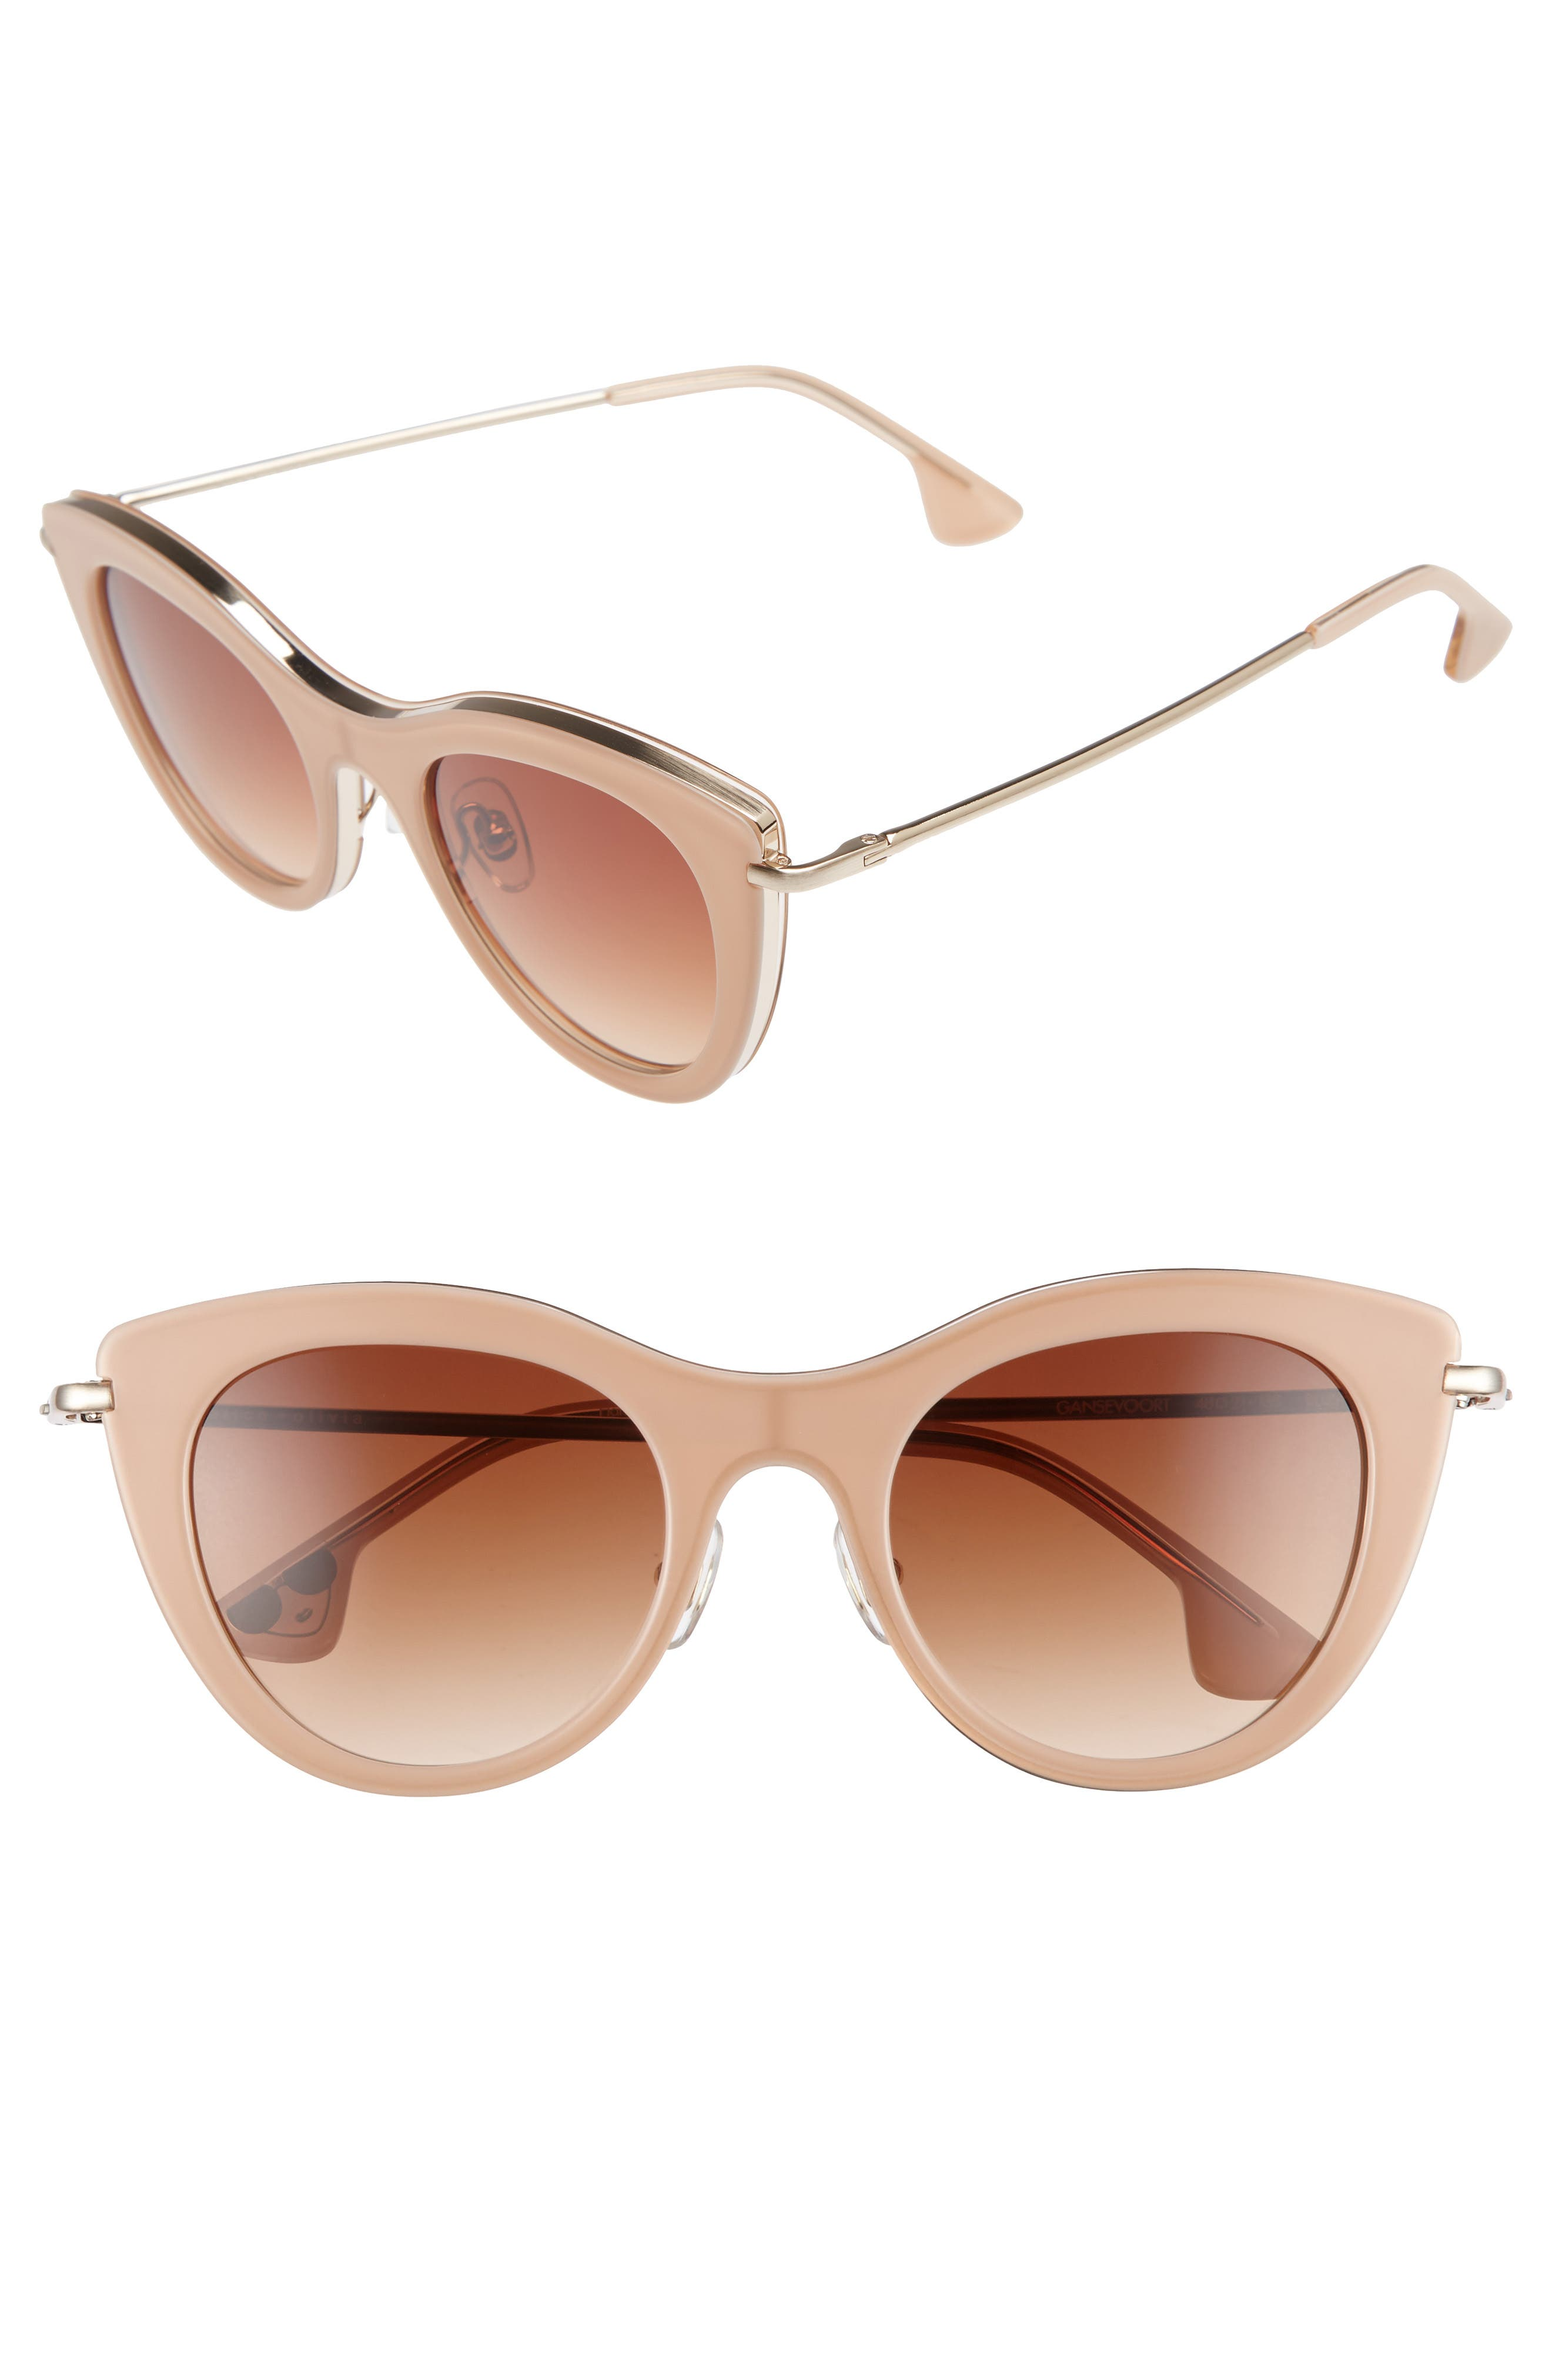 Alternate Image 1 Selected - Alice + Olivia Gansevoort 48mm Special Fit Cat Eye Sunglasses